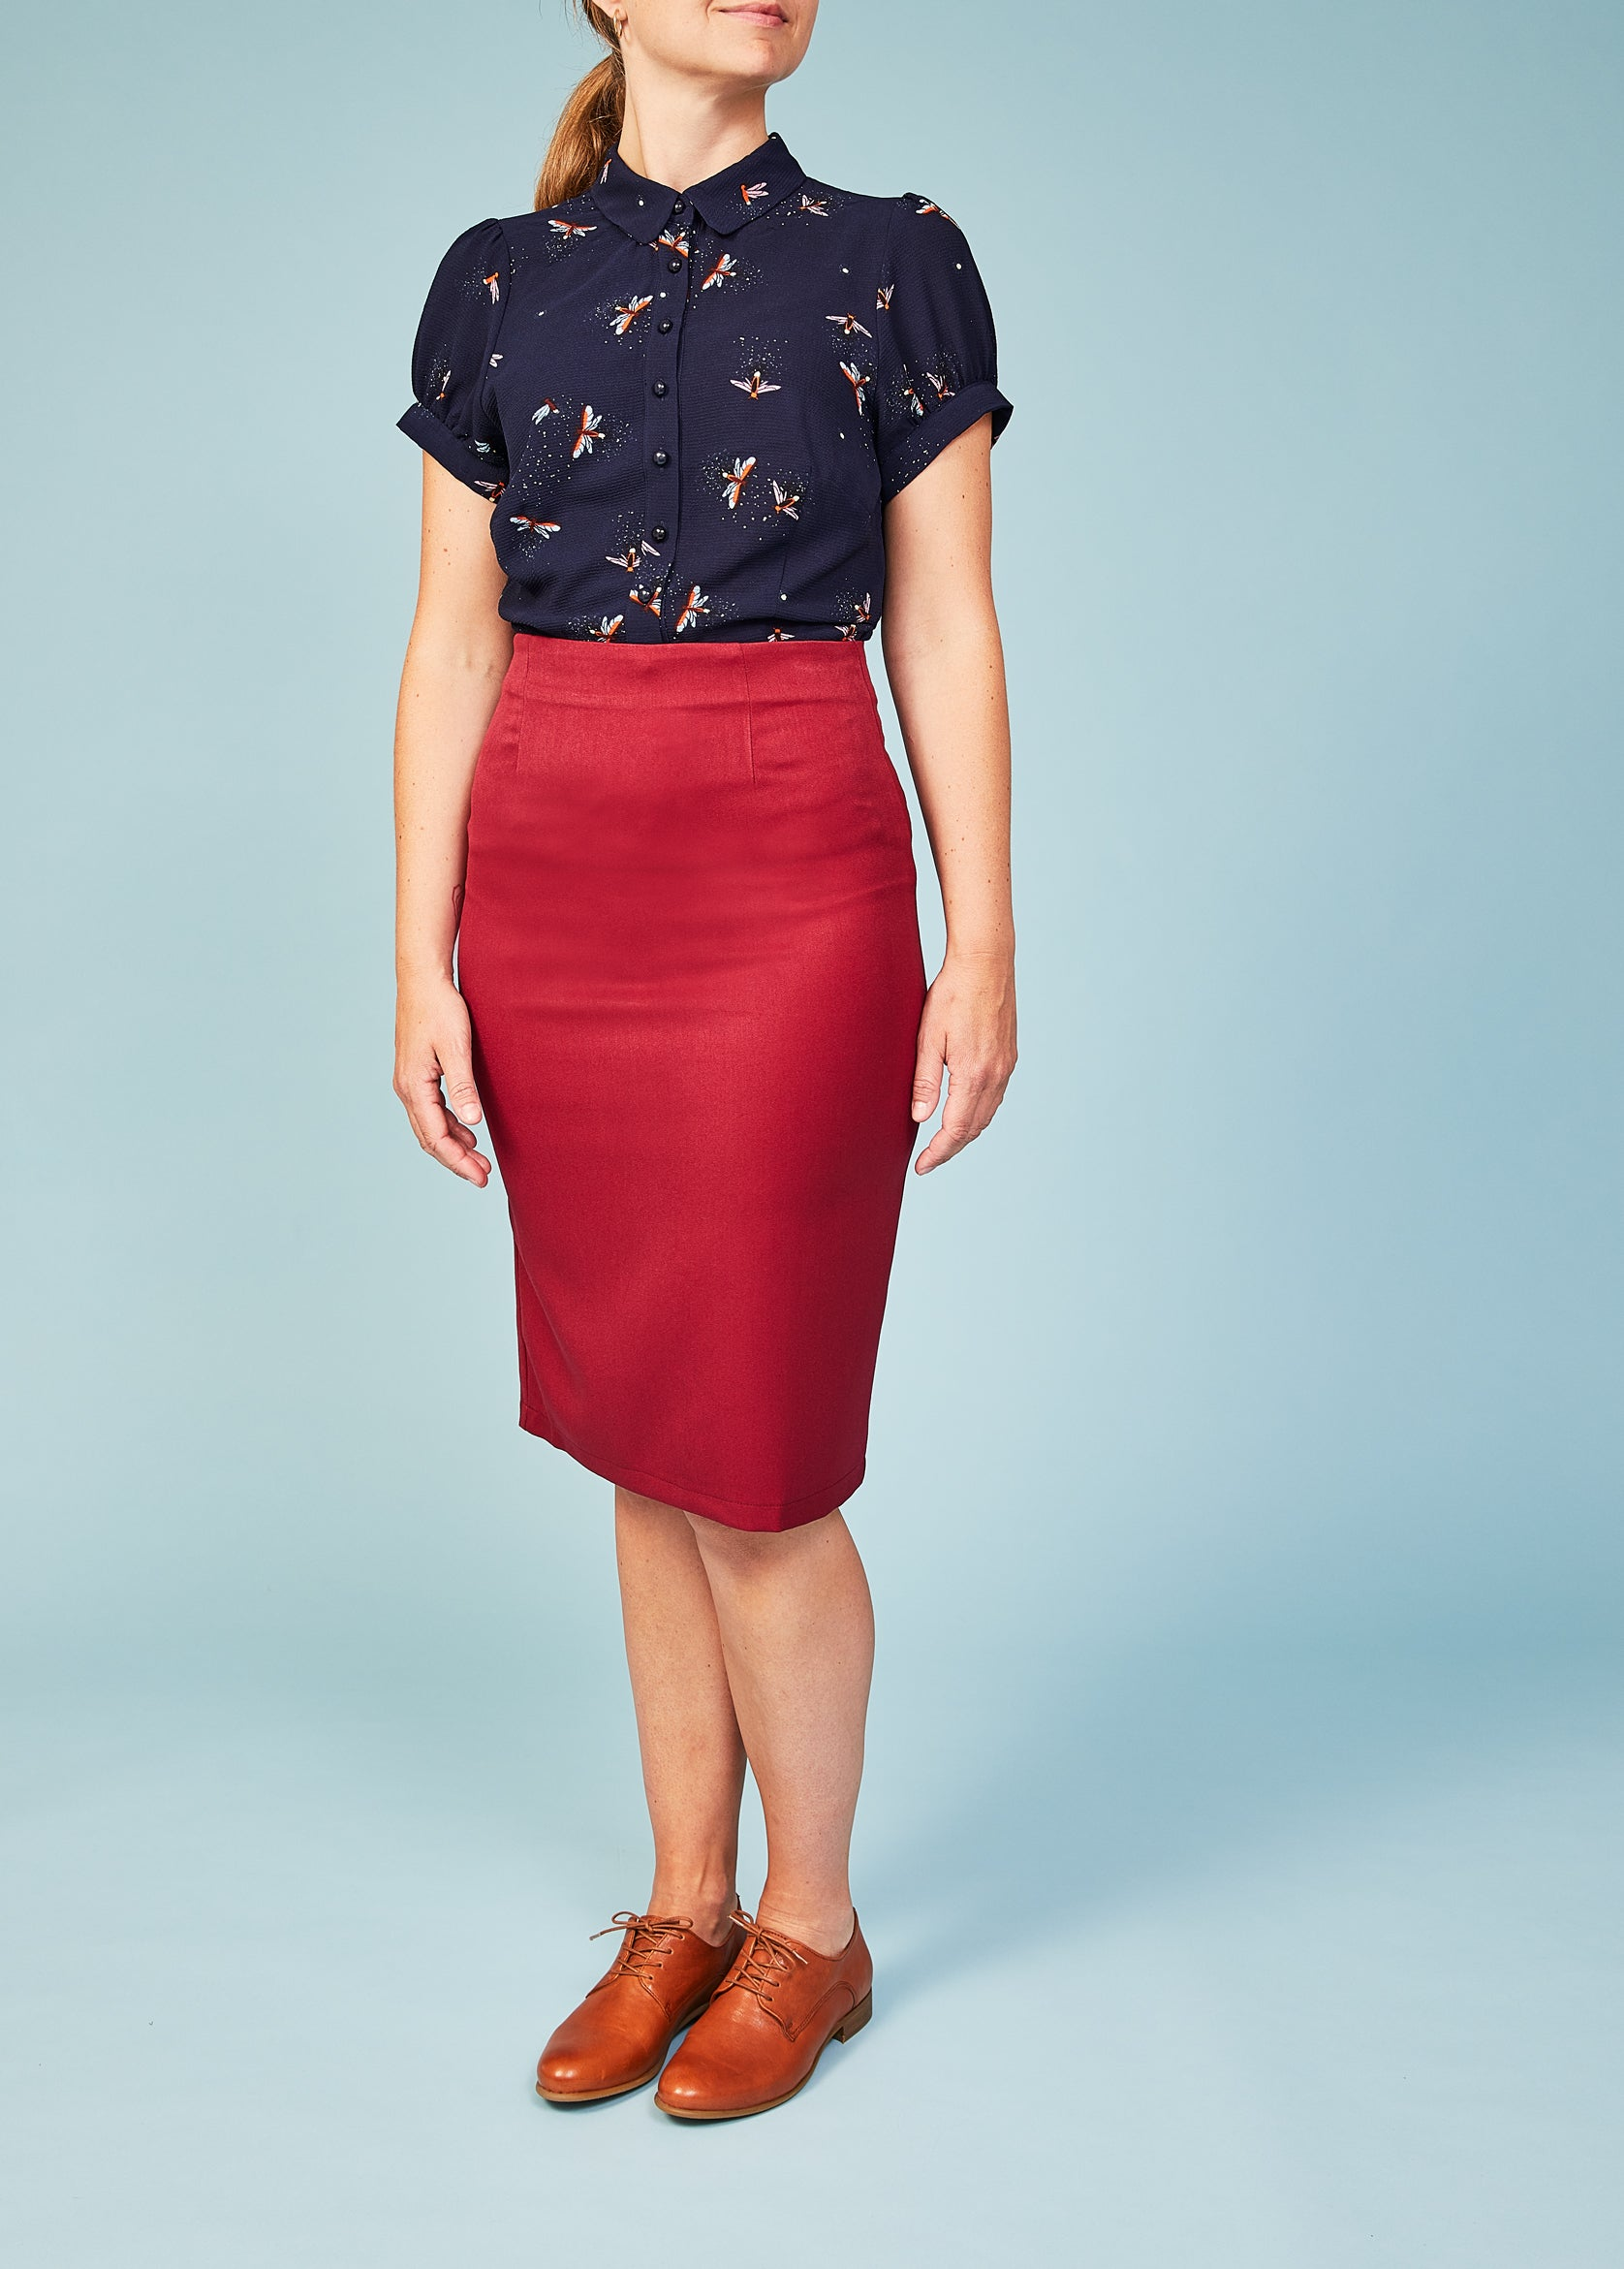 Banned Apparel: Bordeaux pencilskirt